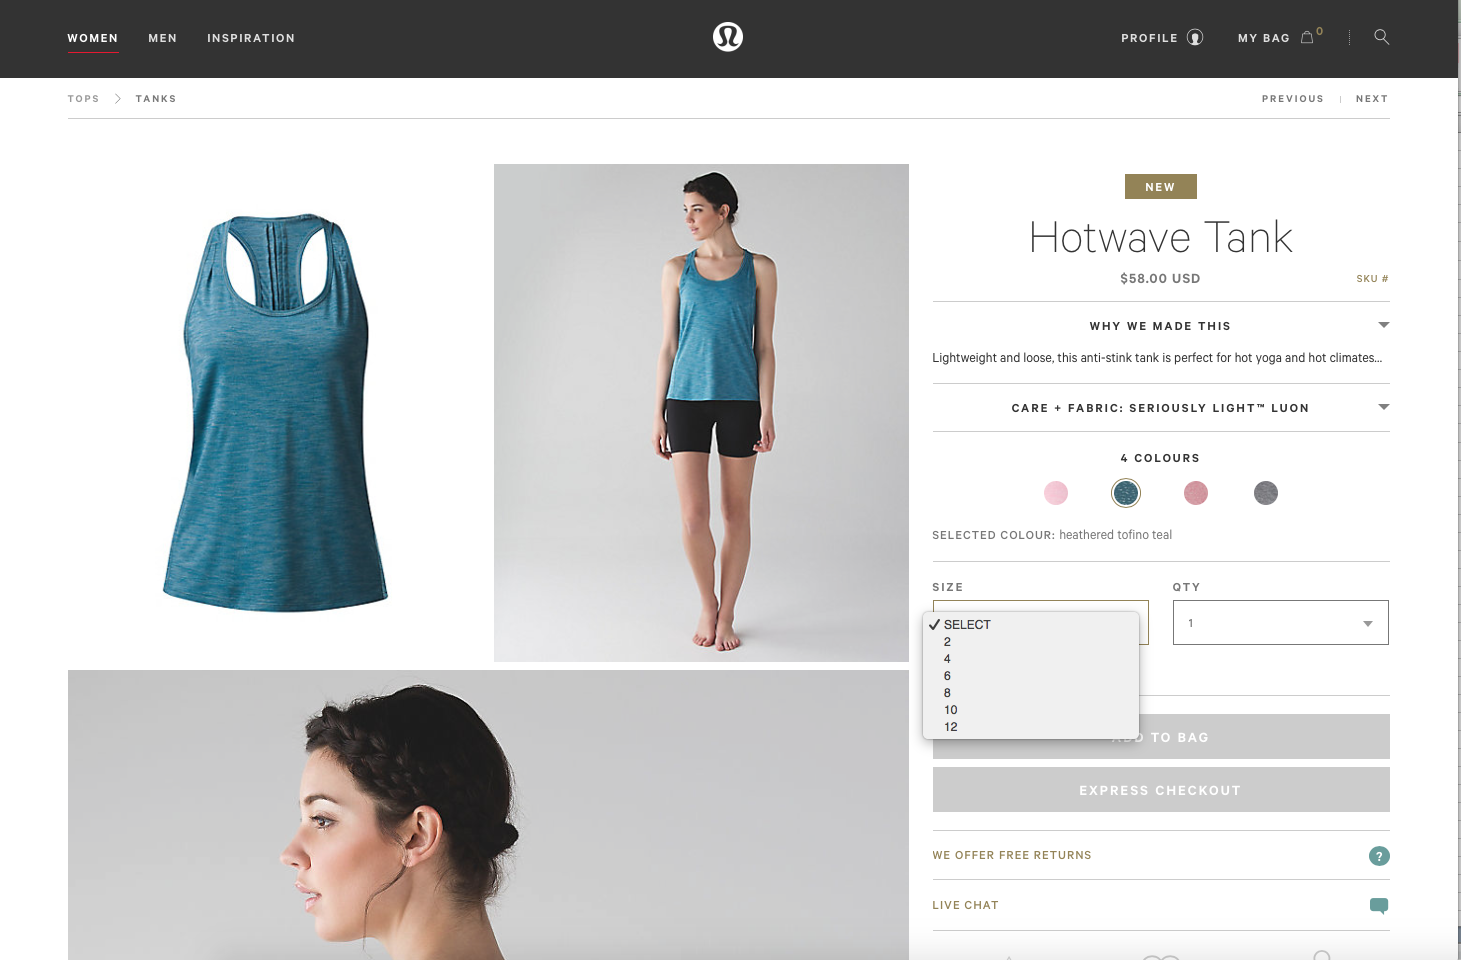 How To Become A Lululemon Model By Anurag Anand Lululemon Model Clicking  Gets To More Details